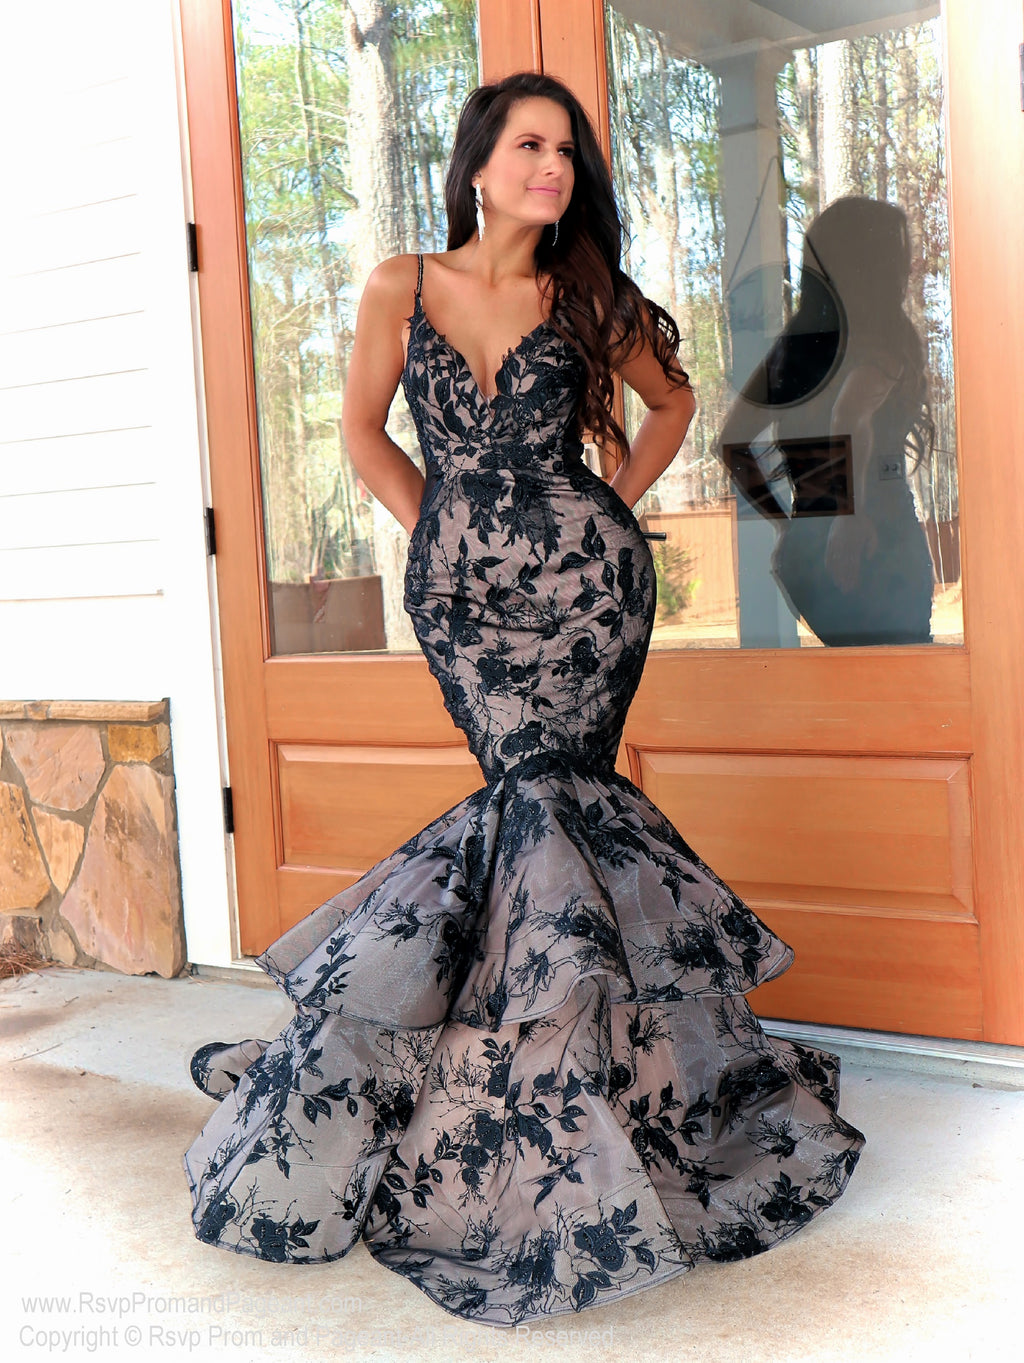 Talk about sophistication! This model is looking absolutely STUNNING in this couture gown featuring beautiful black lace applique over nude! And it's at Rsvp Prom and Pageant, your source for the HOTTEST Prom and Pageant Dresses and Exclusive Evening Gowns and located in Atlanta, Georgia!